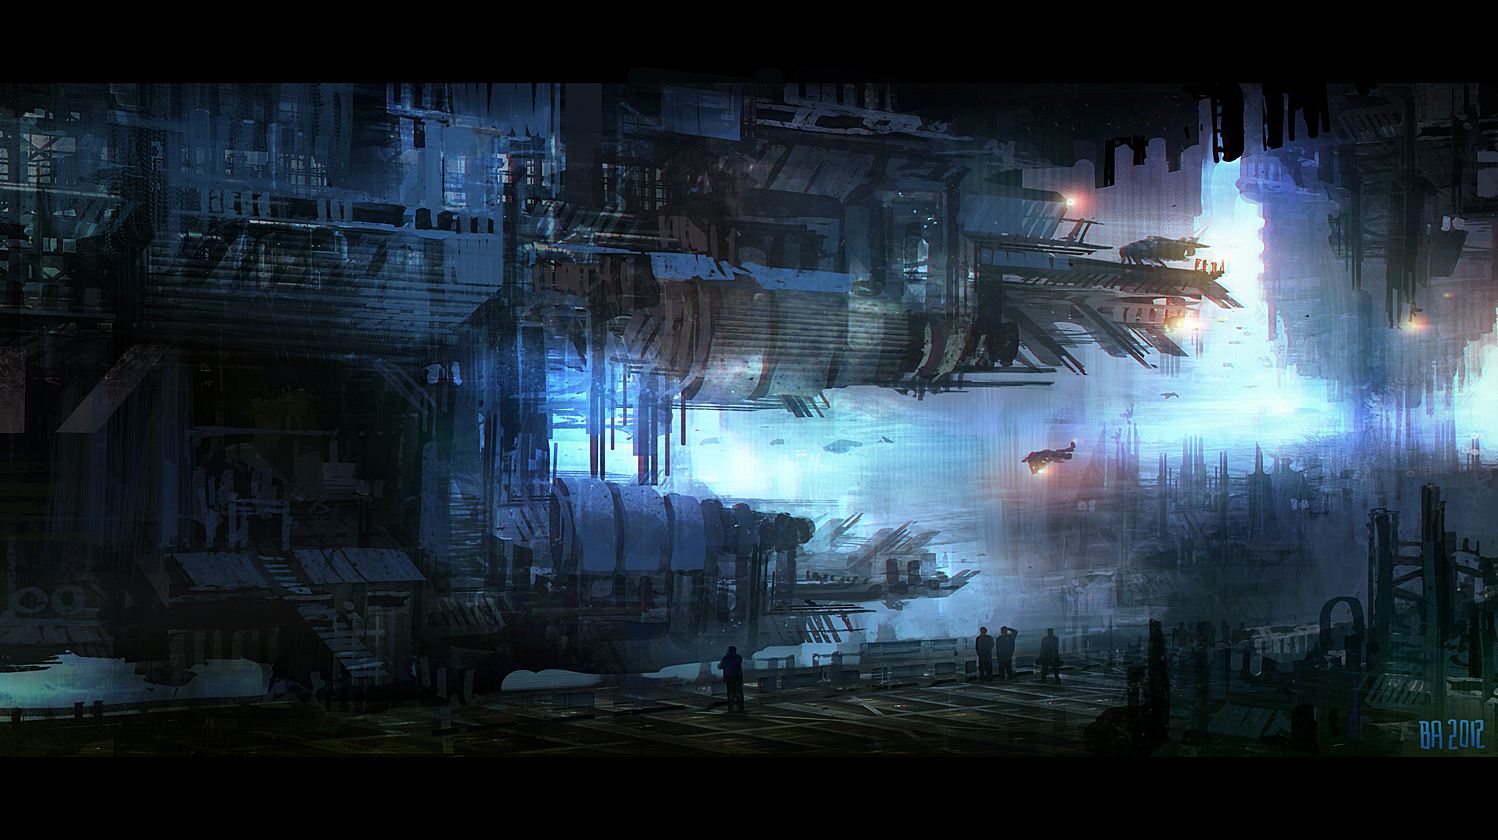 cyberpunk metropolis wallpaper - photo #10